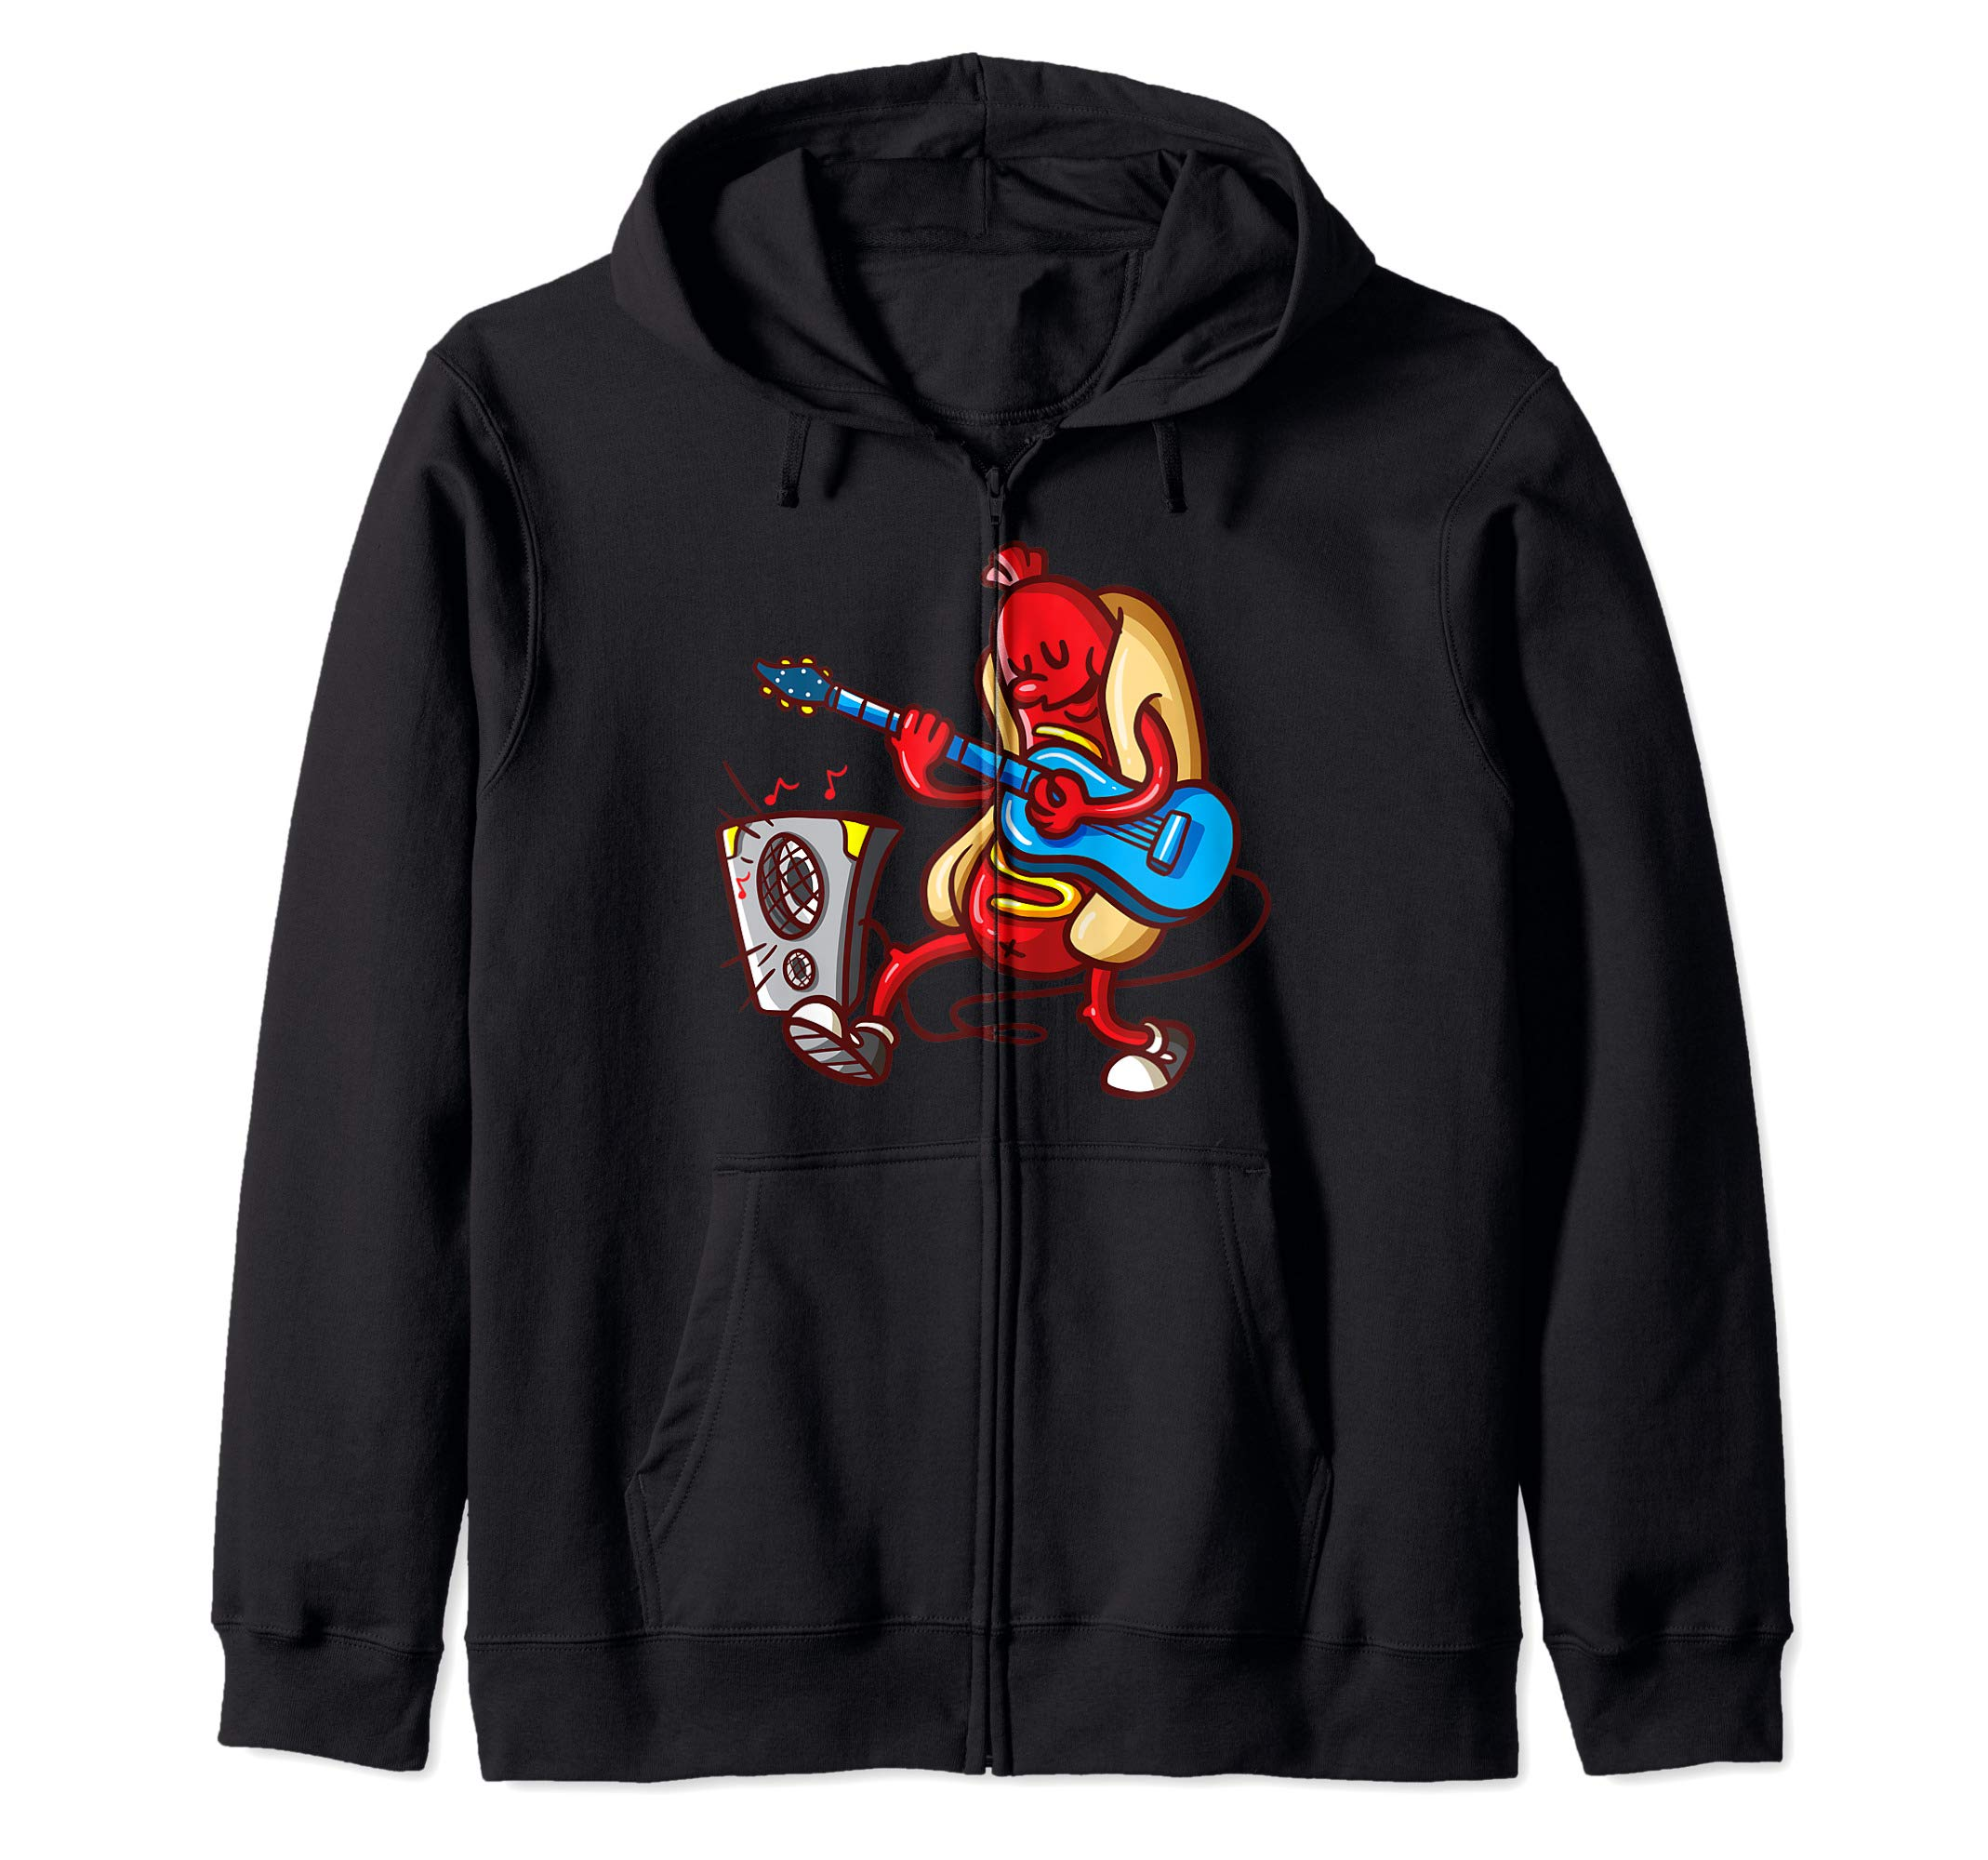 Hot Dog Guitarist American Food Lover BBQ Gift Costume Shirt Zip Hoodie by Hot Dog Costume Co.